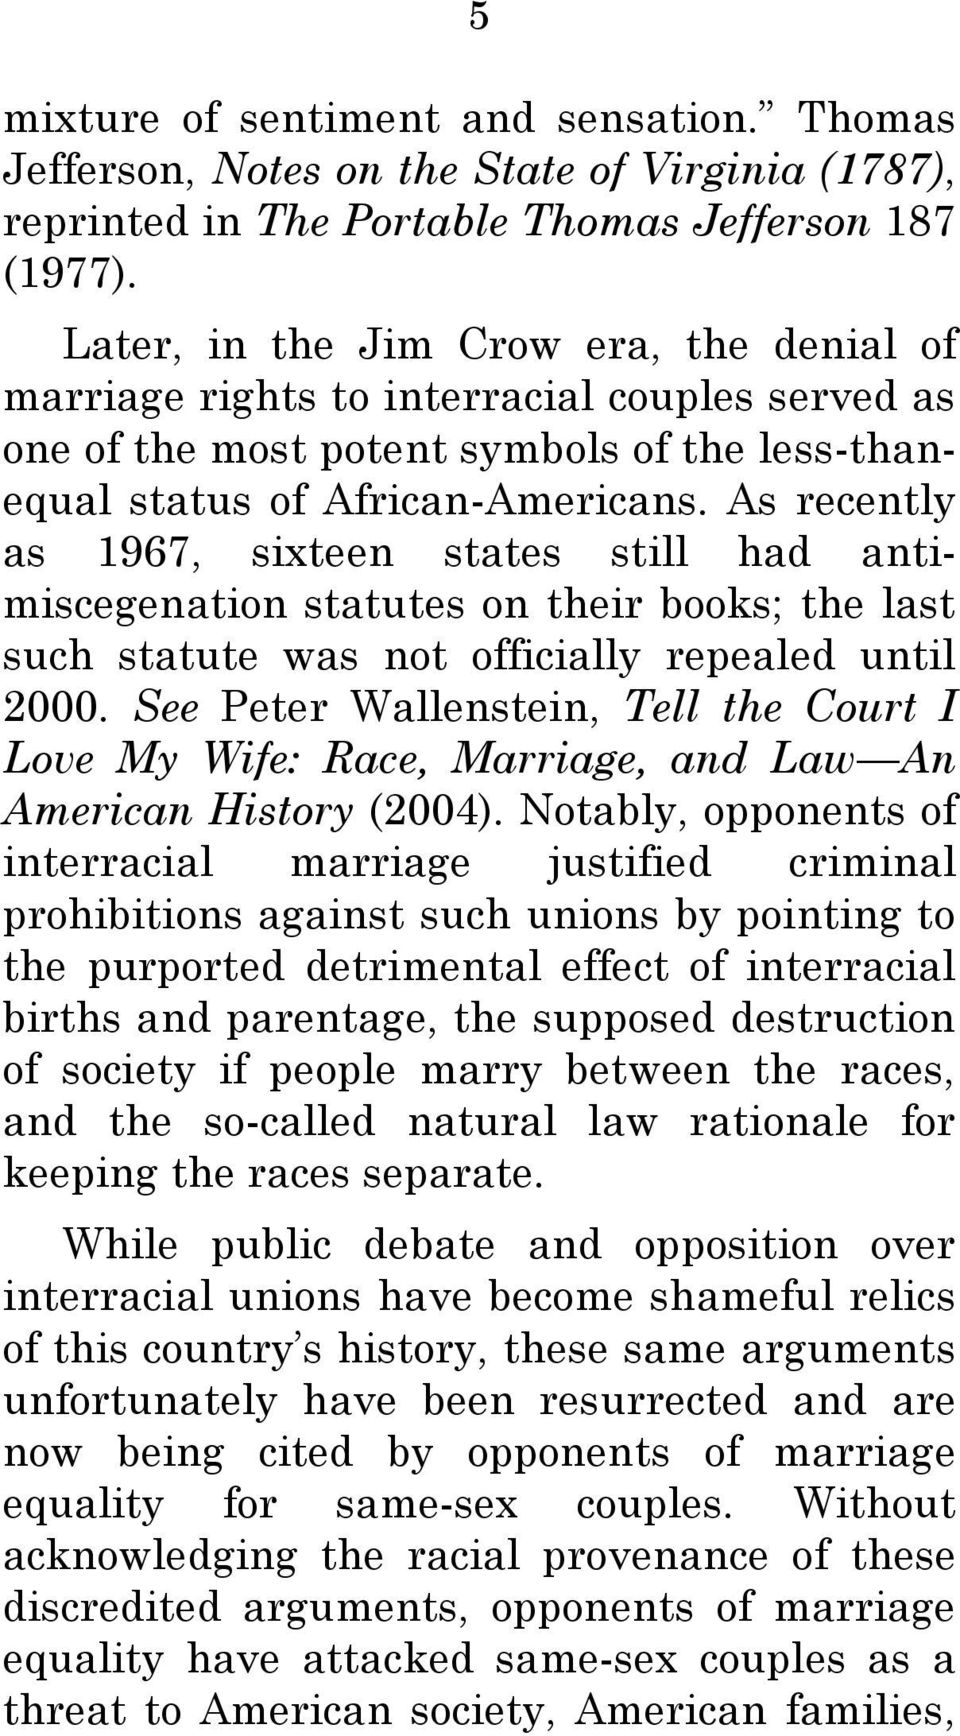 As recently as 1967, sixteen states still had antimiscegenation statutes on their books; the last such statute was not officially repealed until 2000.